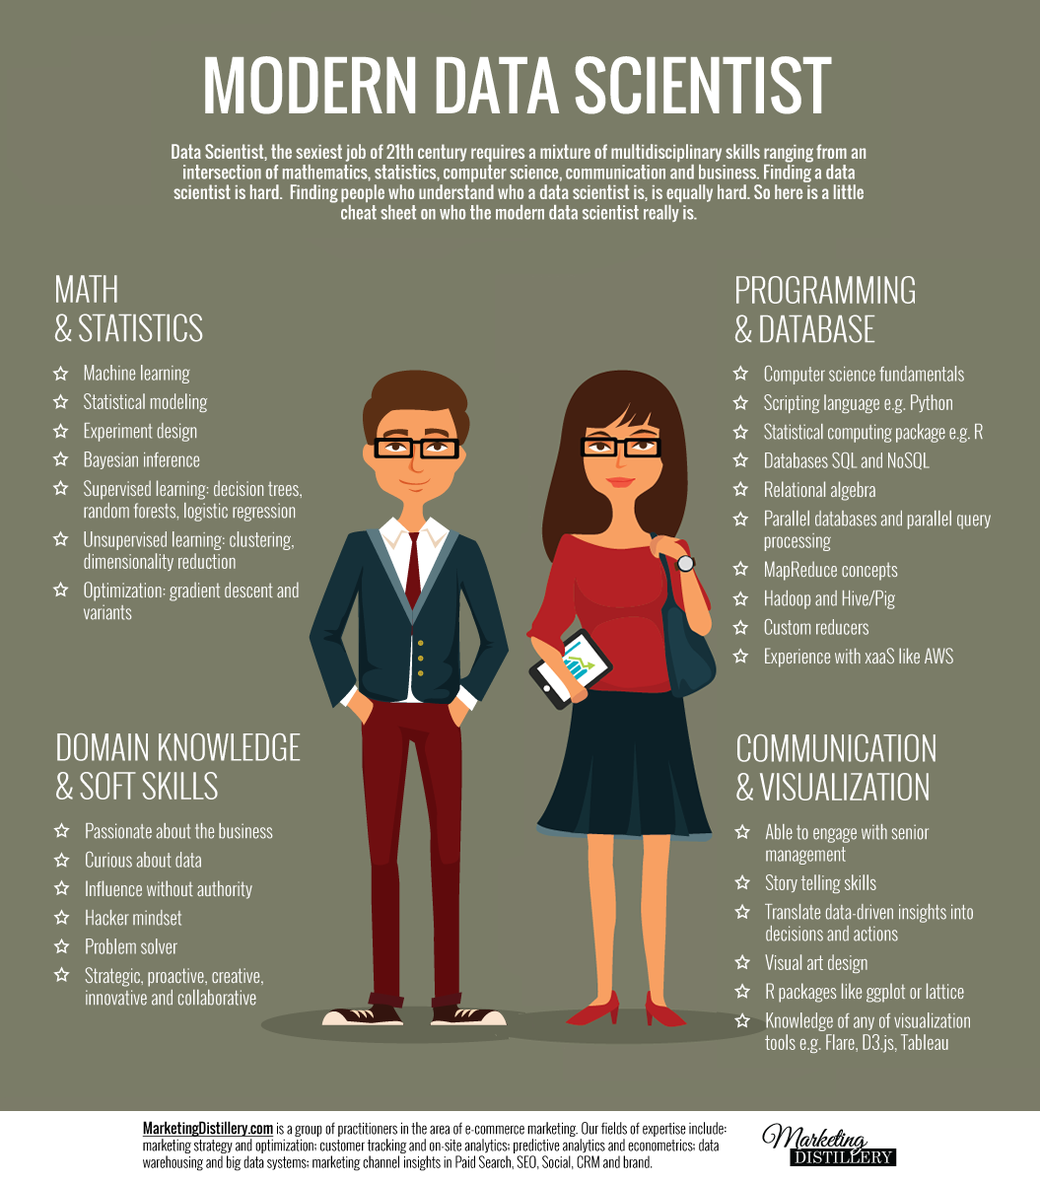 A long-term Data Science roadmap which WON'T help you become an